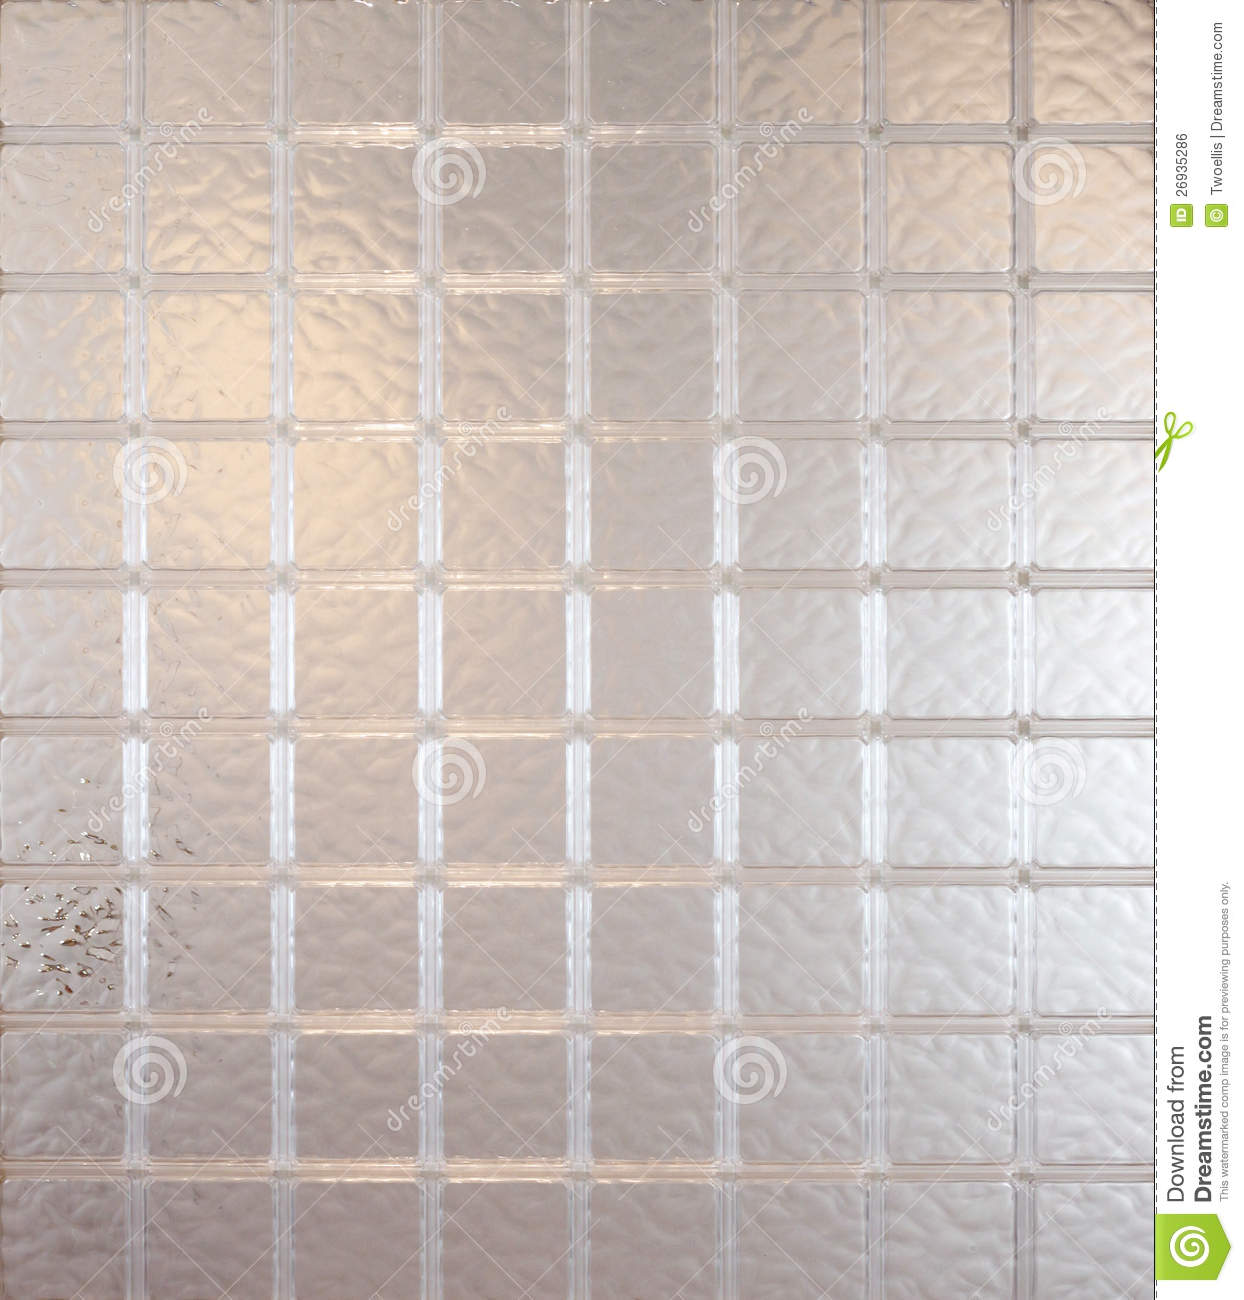 Glass block window royalty free stock image image 26935286 Plastic glass block windows